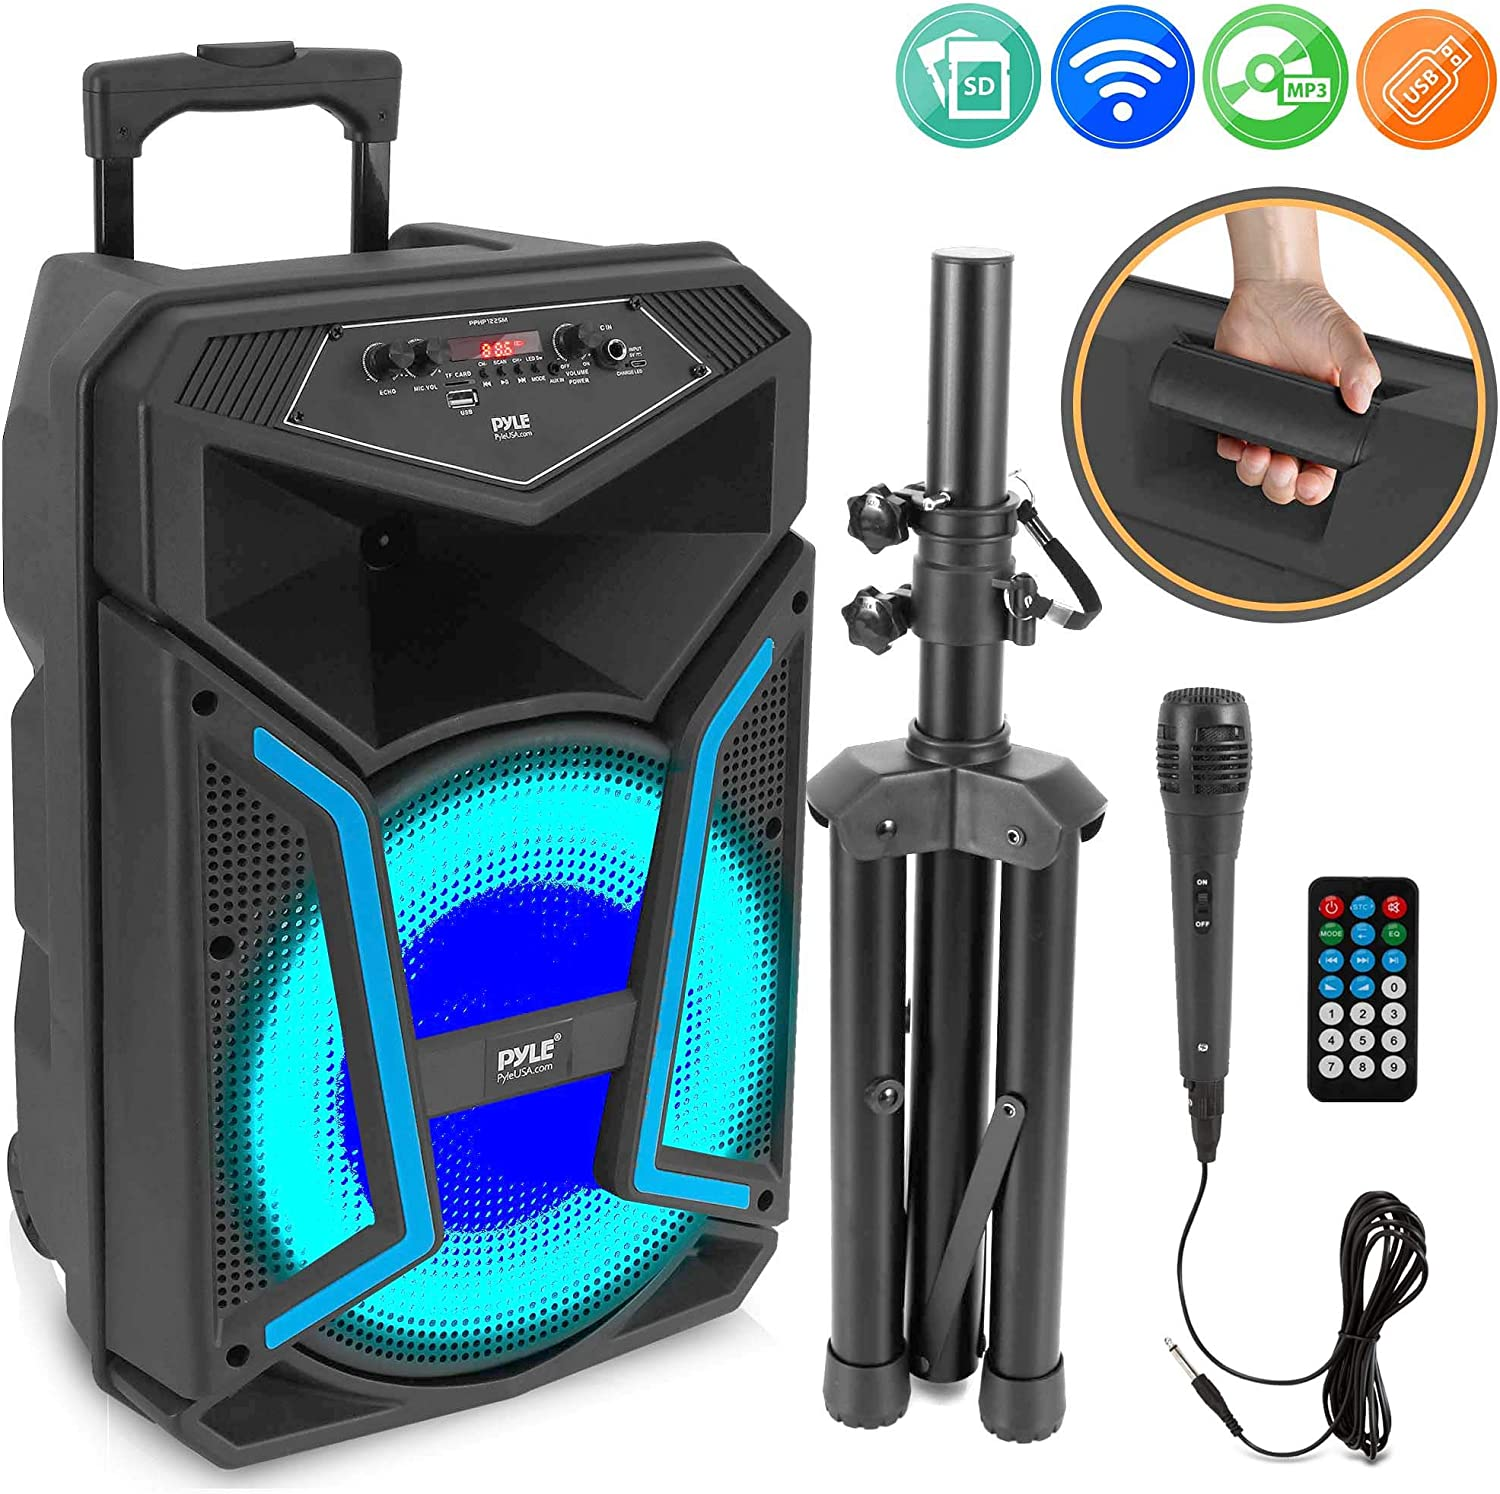 Pyle System-800W Outdoor Bluetooth Speaker Portable PA System